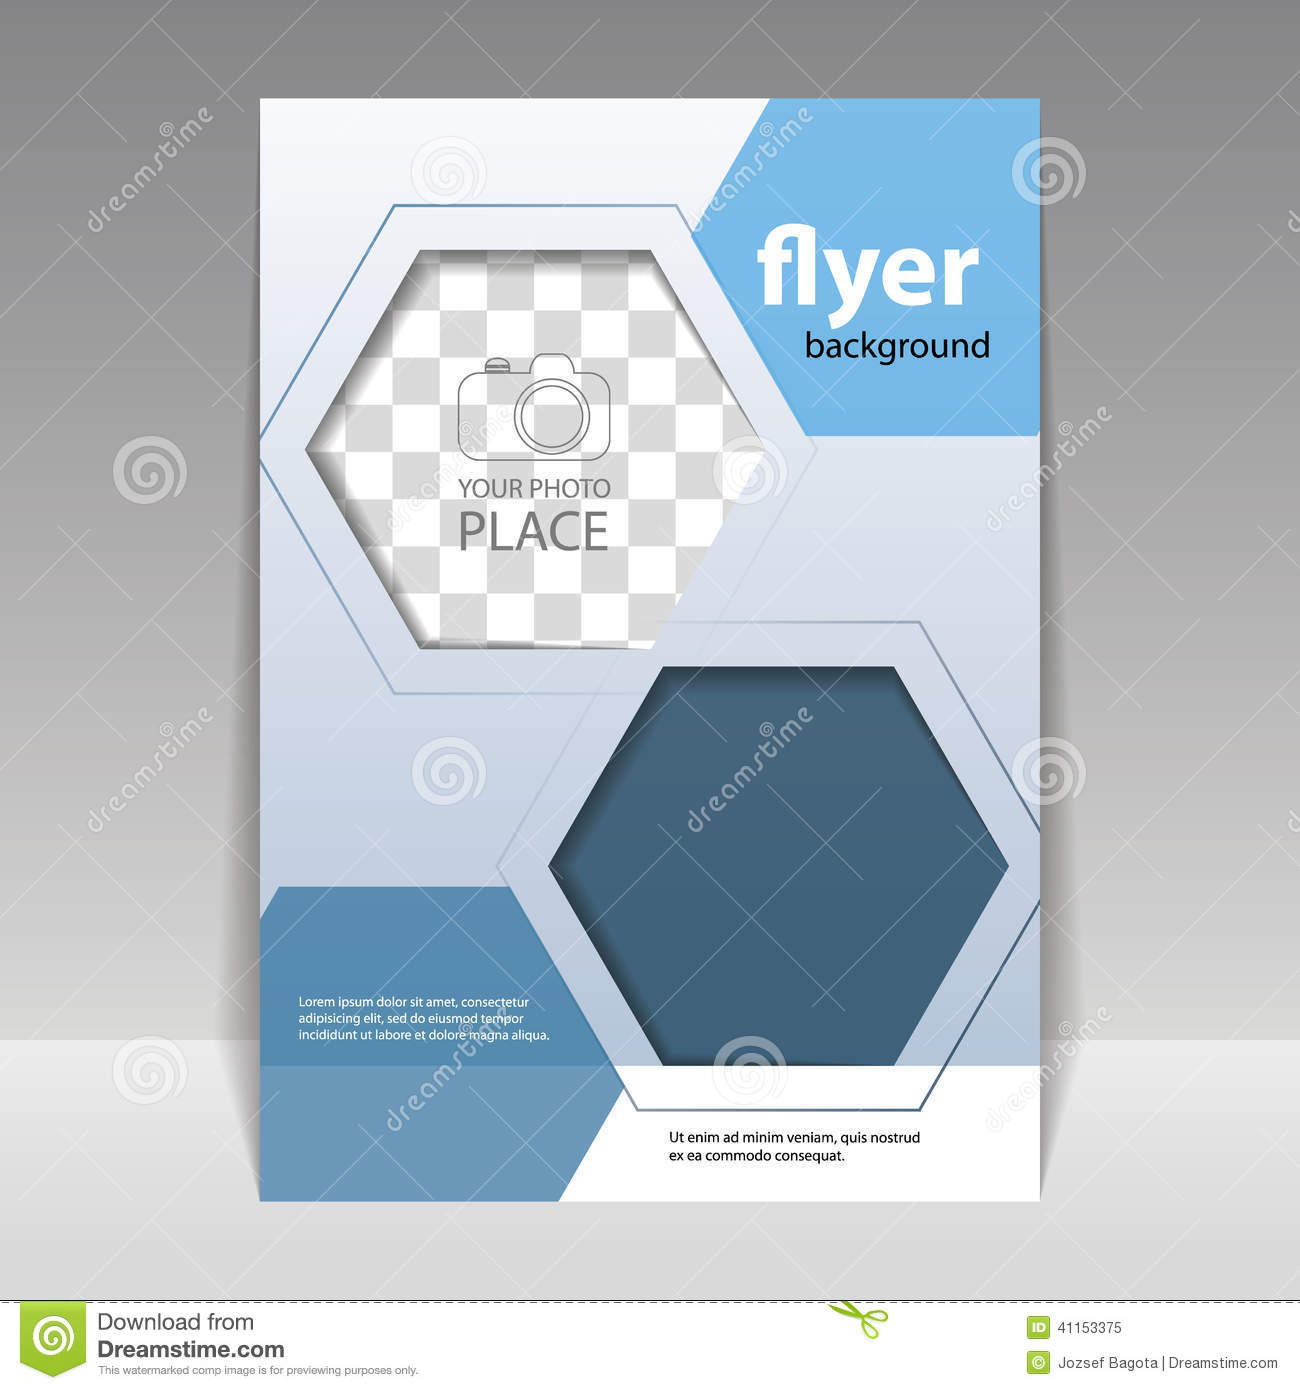 Business Or Technology Flyer Design Template Stock Vector - Image ...